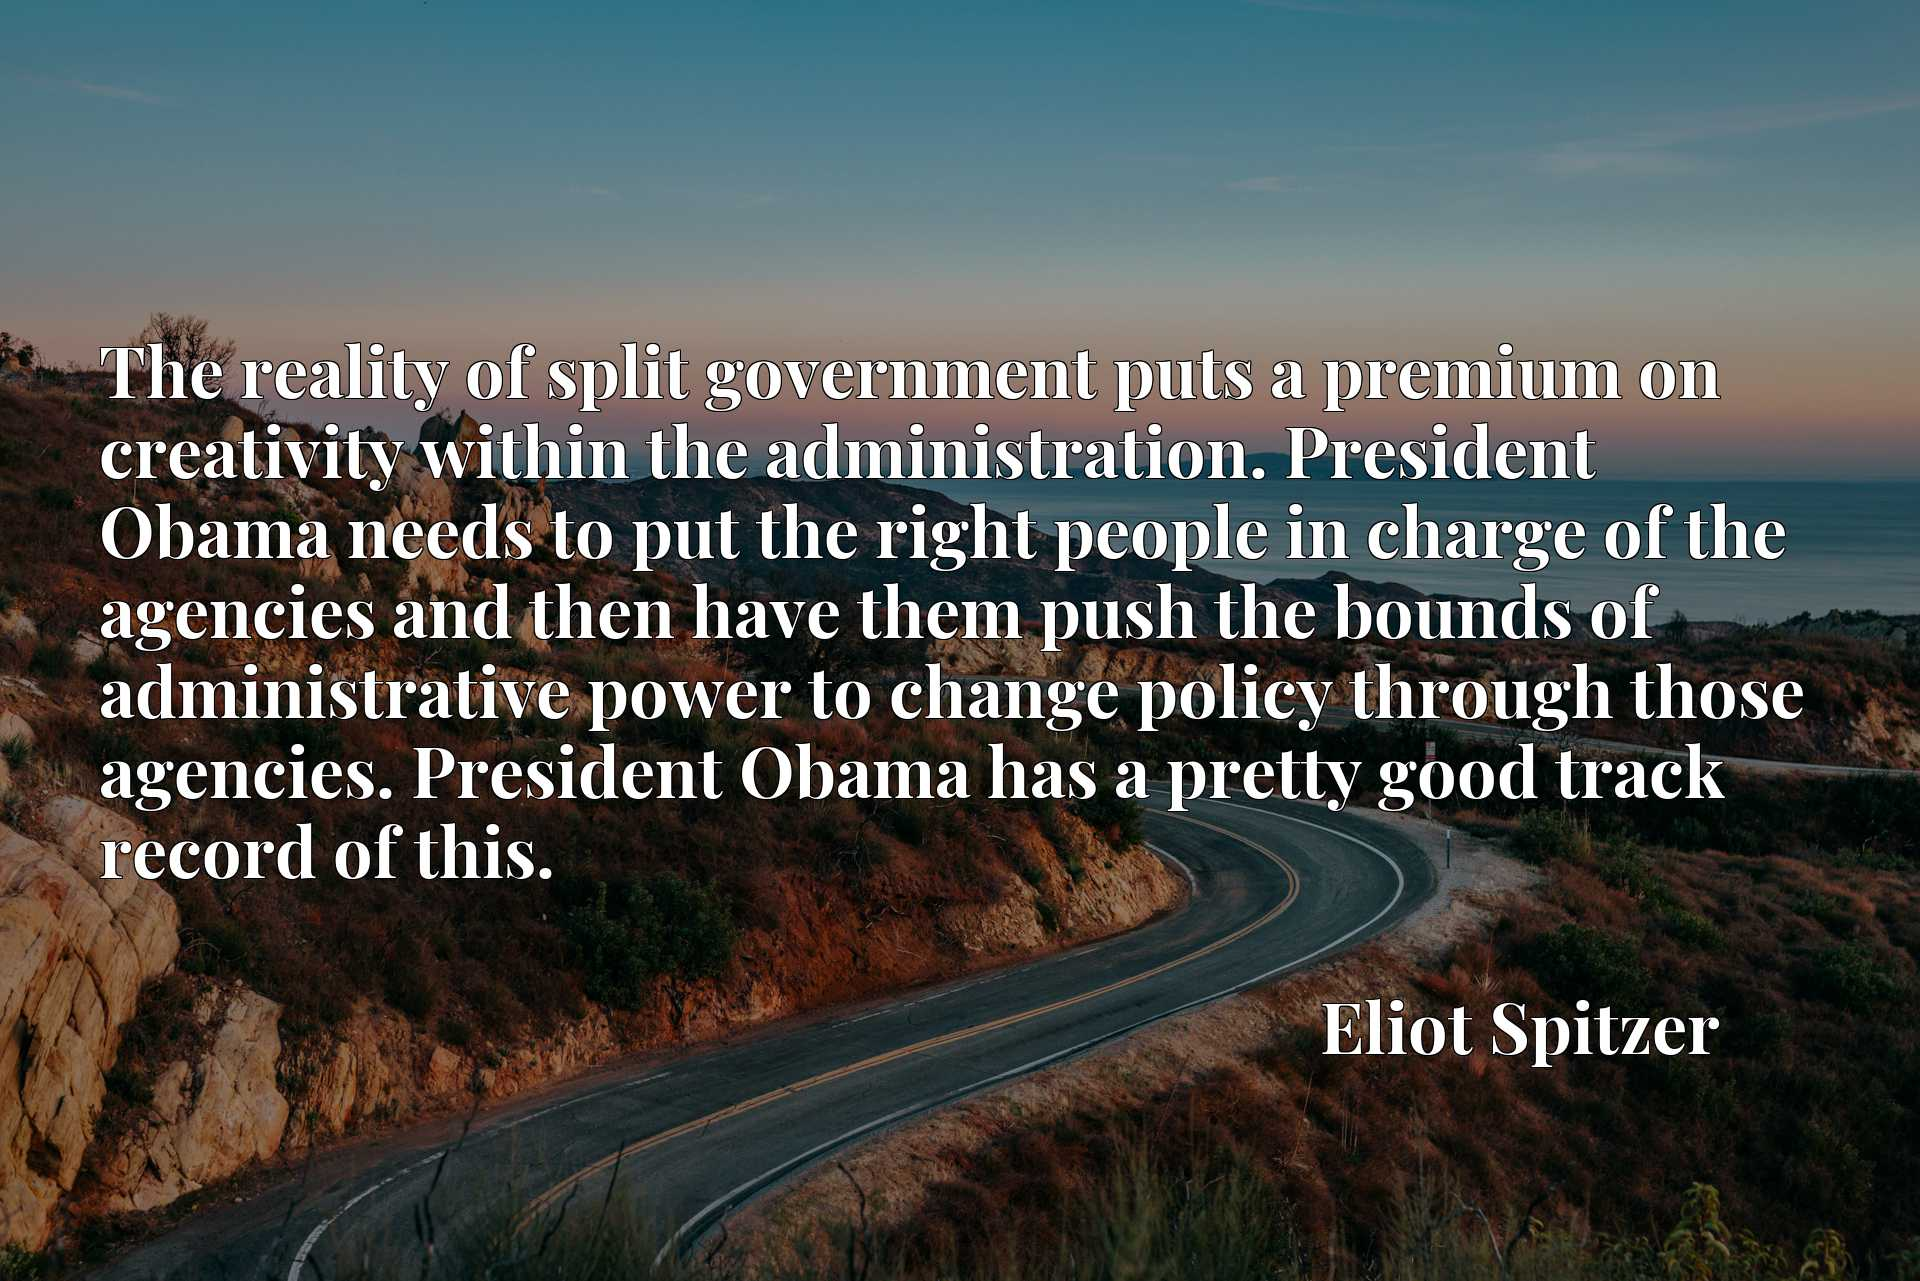 The reality of split government puts a premium on creativity within the administration. President Obama needs to put the right people in charge of the agencies and then have them push the bounds of administrative power to change policy through those agencies. President Obama has a pretty good track record of this.